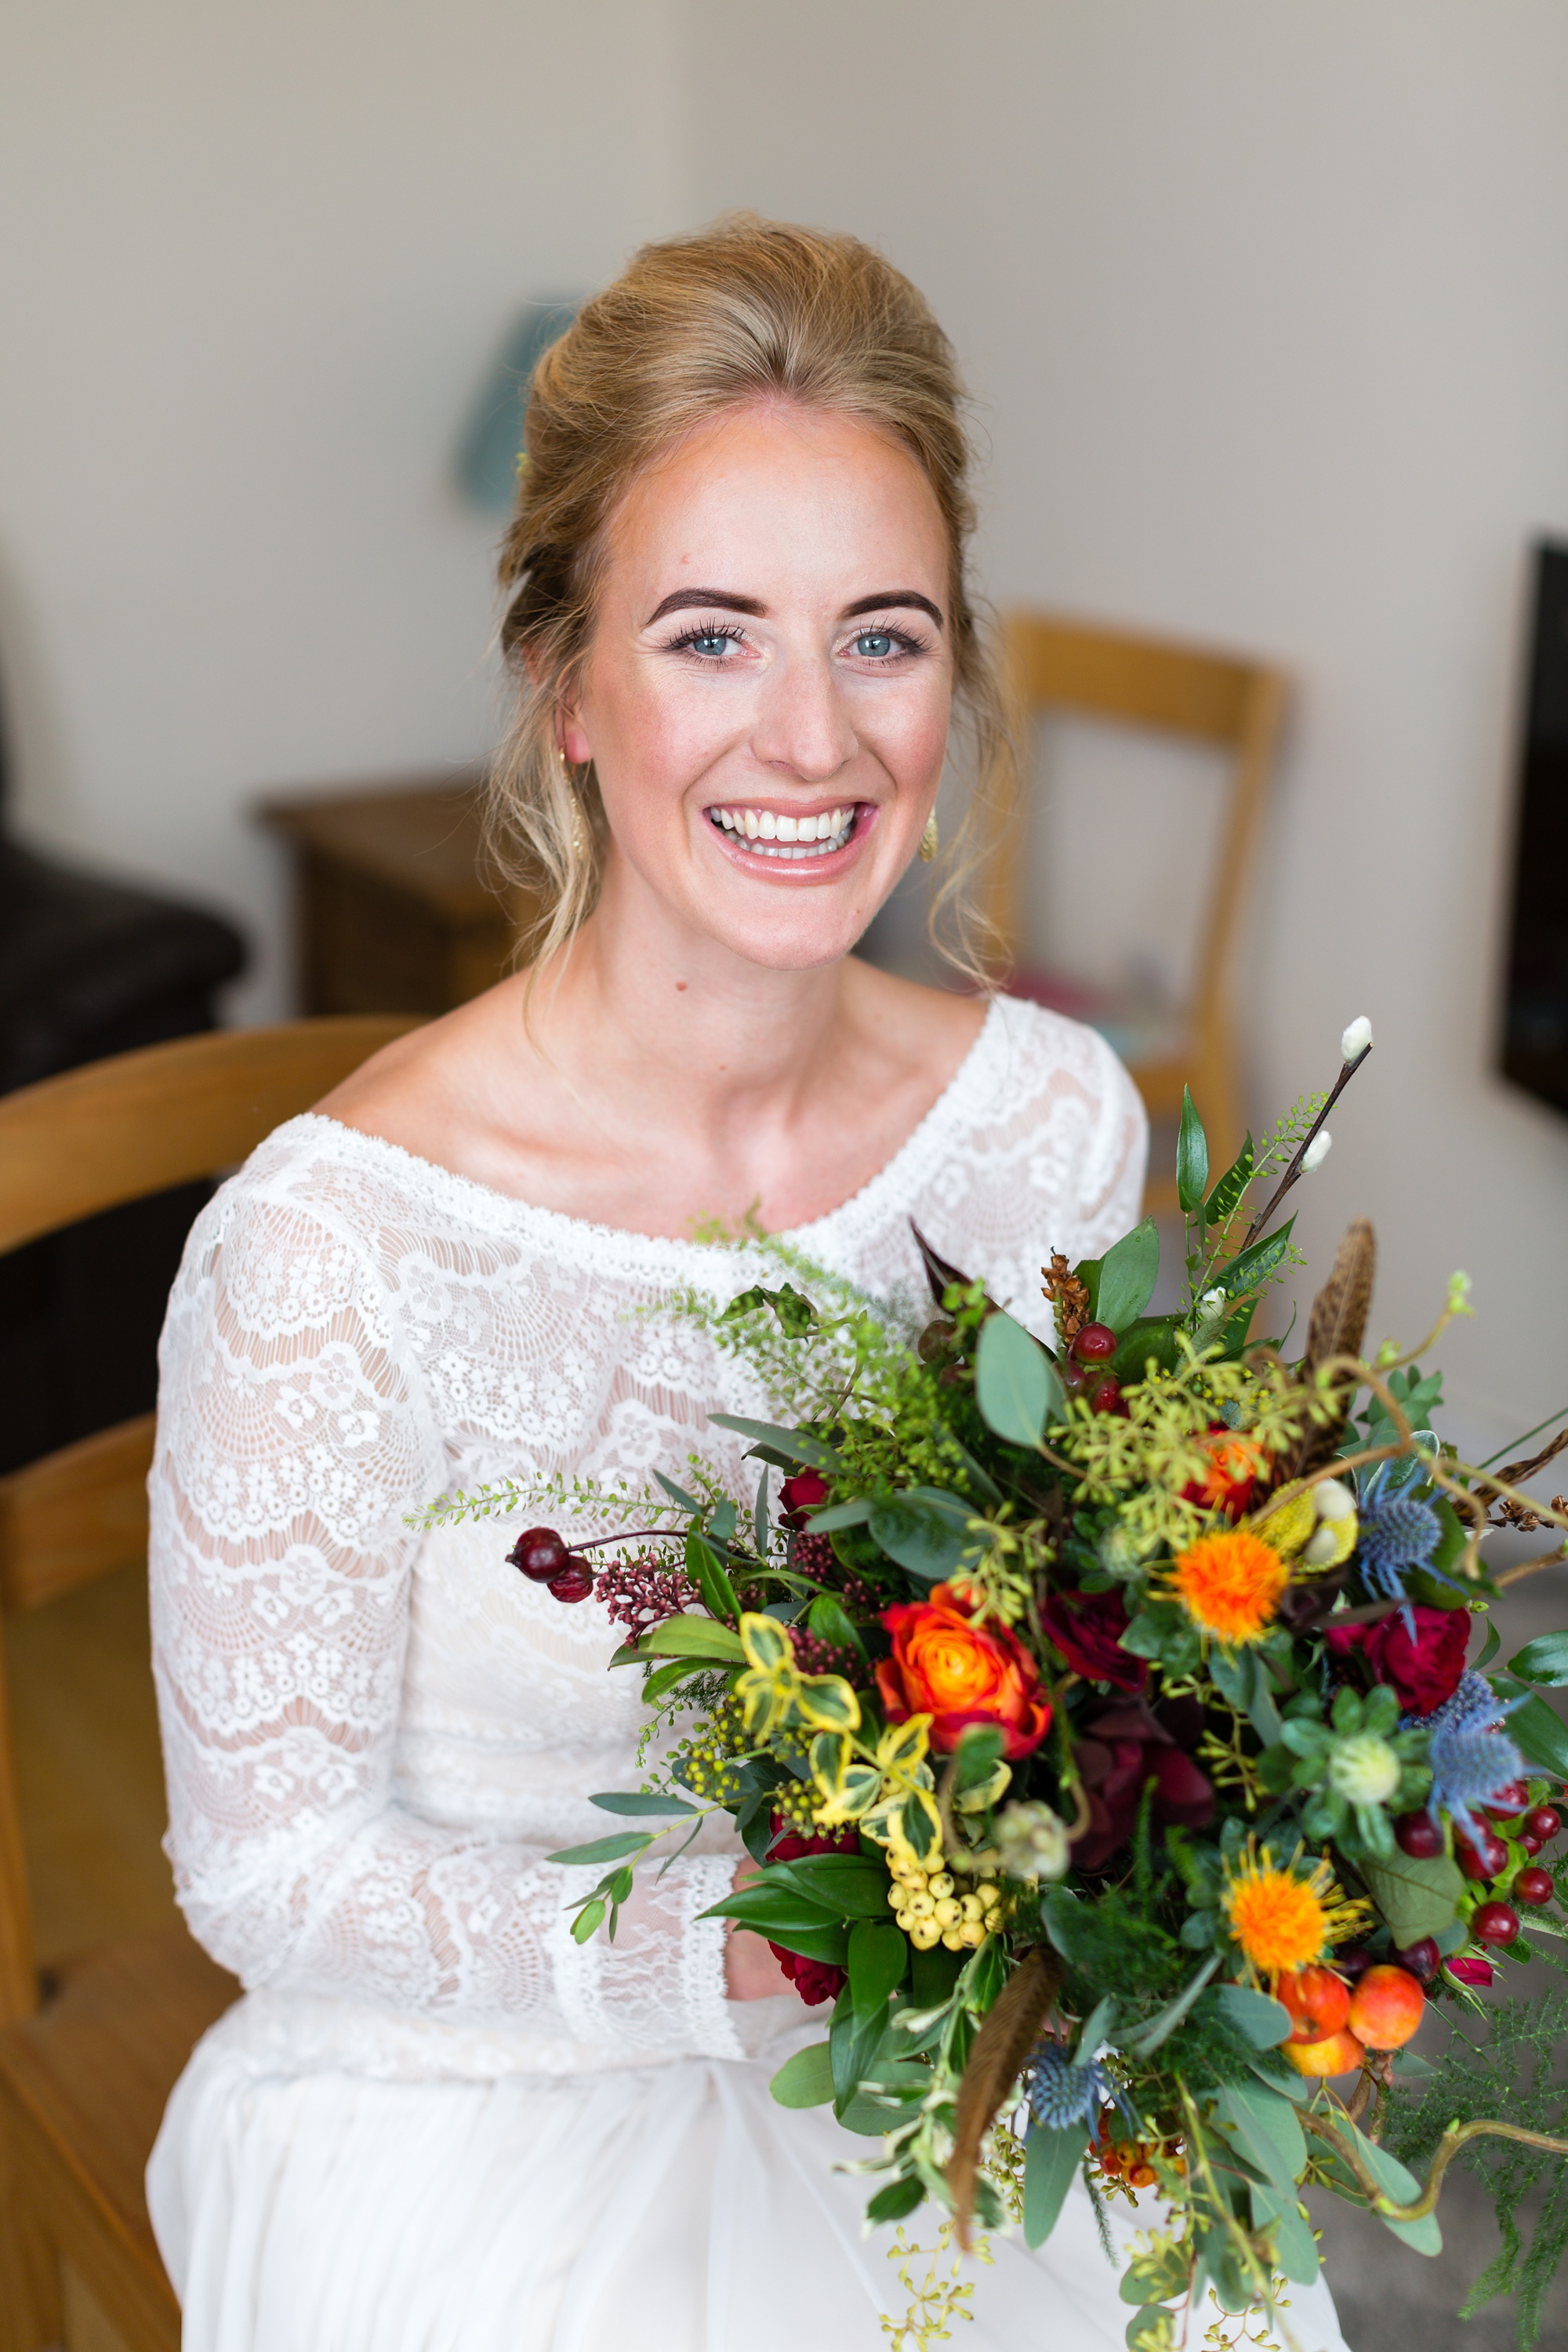 Barmbyfield Barn Wedding Photography bride portrait holding autumnal flowers